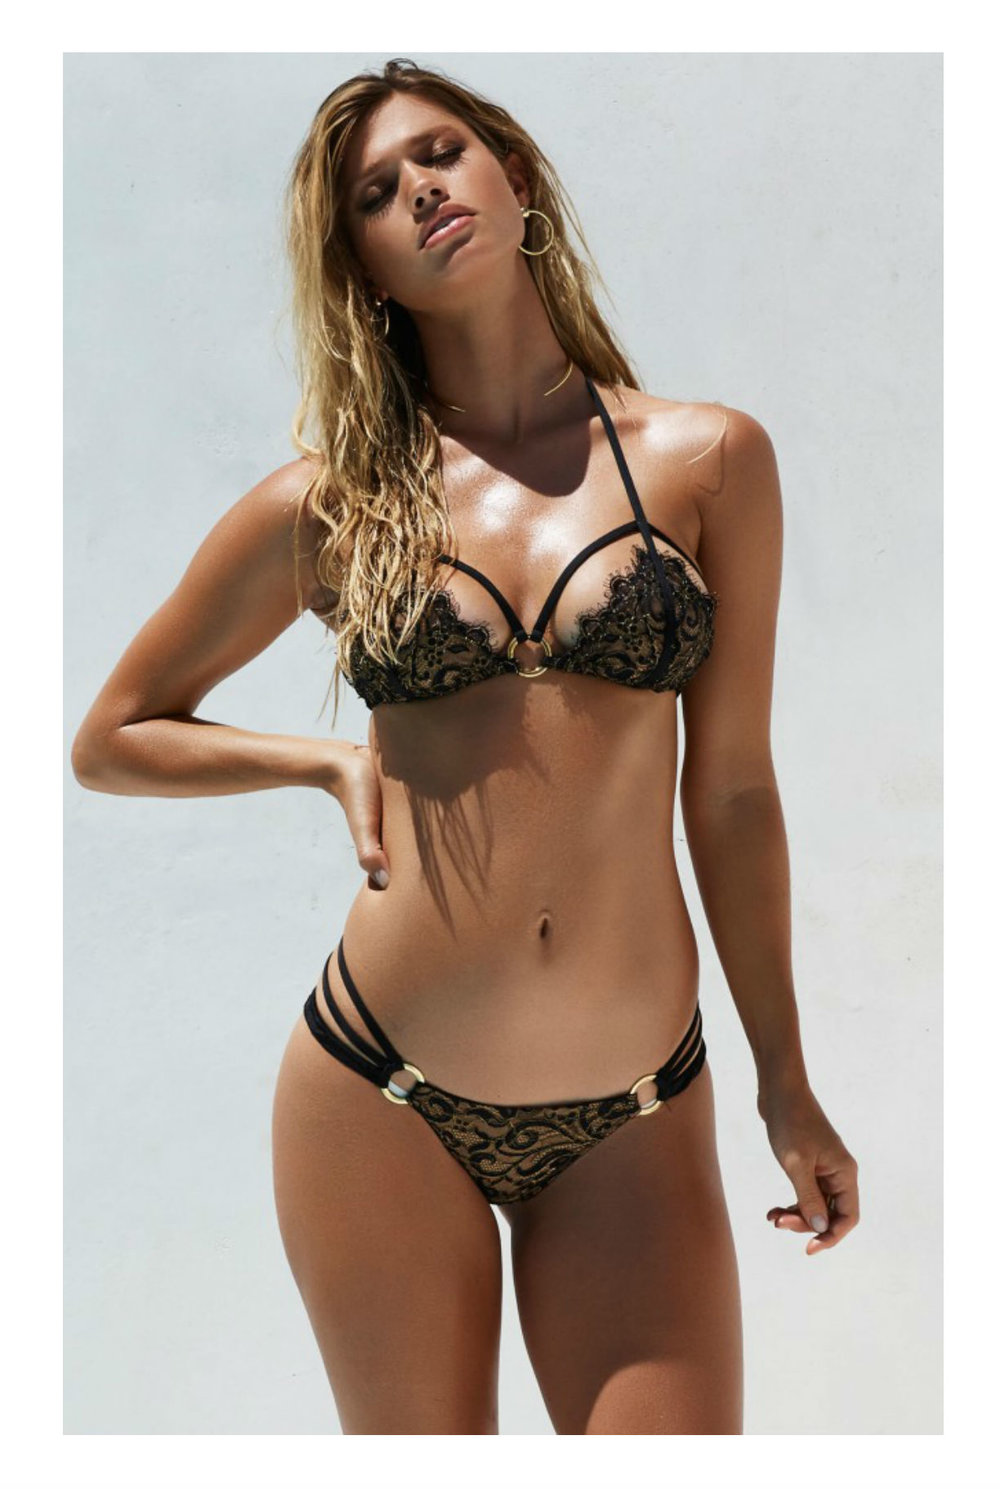 Beach Bunny Gunpowder & Lace Bikini - Black & Gold from £100.00